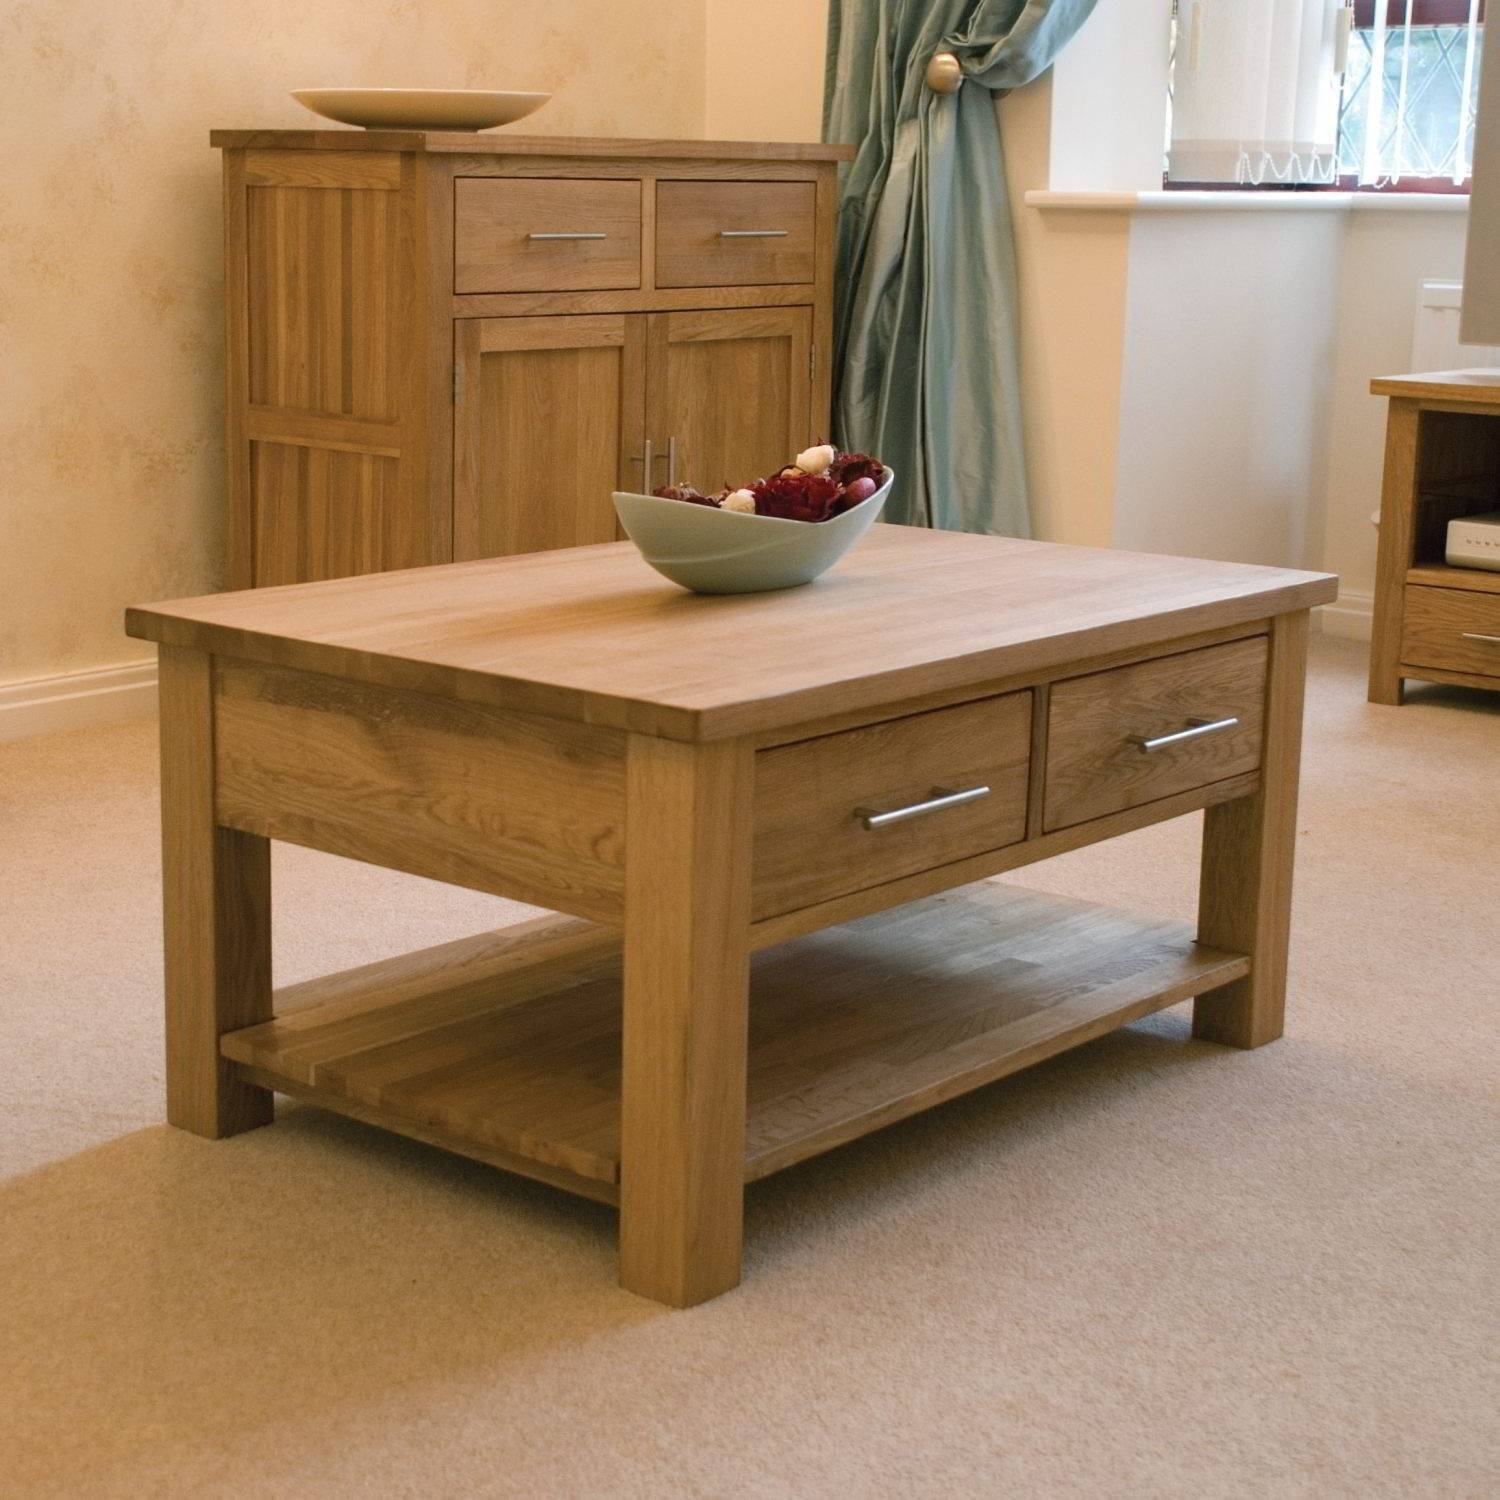 Solid Oak Coffee Table And End Tables | Coffee Tables Decoration regarding Cream and Oak Coffee Tables (Image 28 of 30)